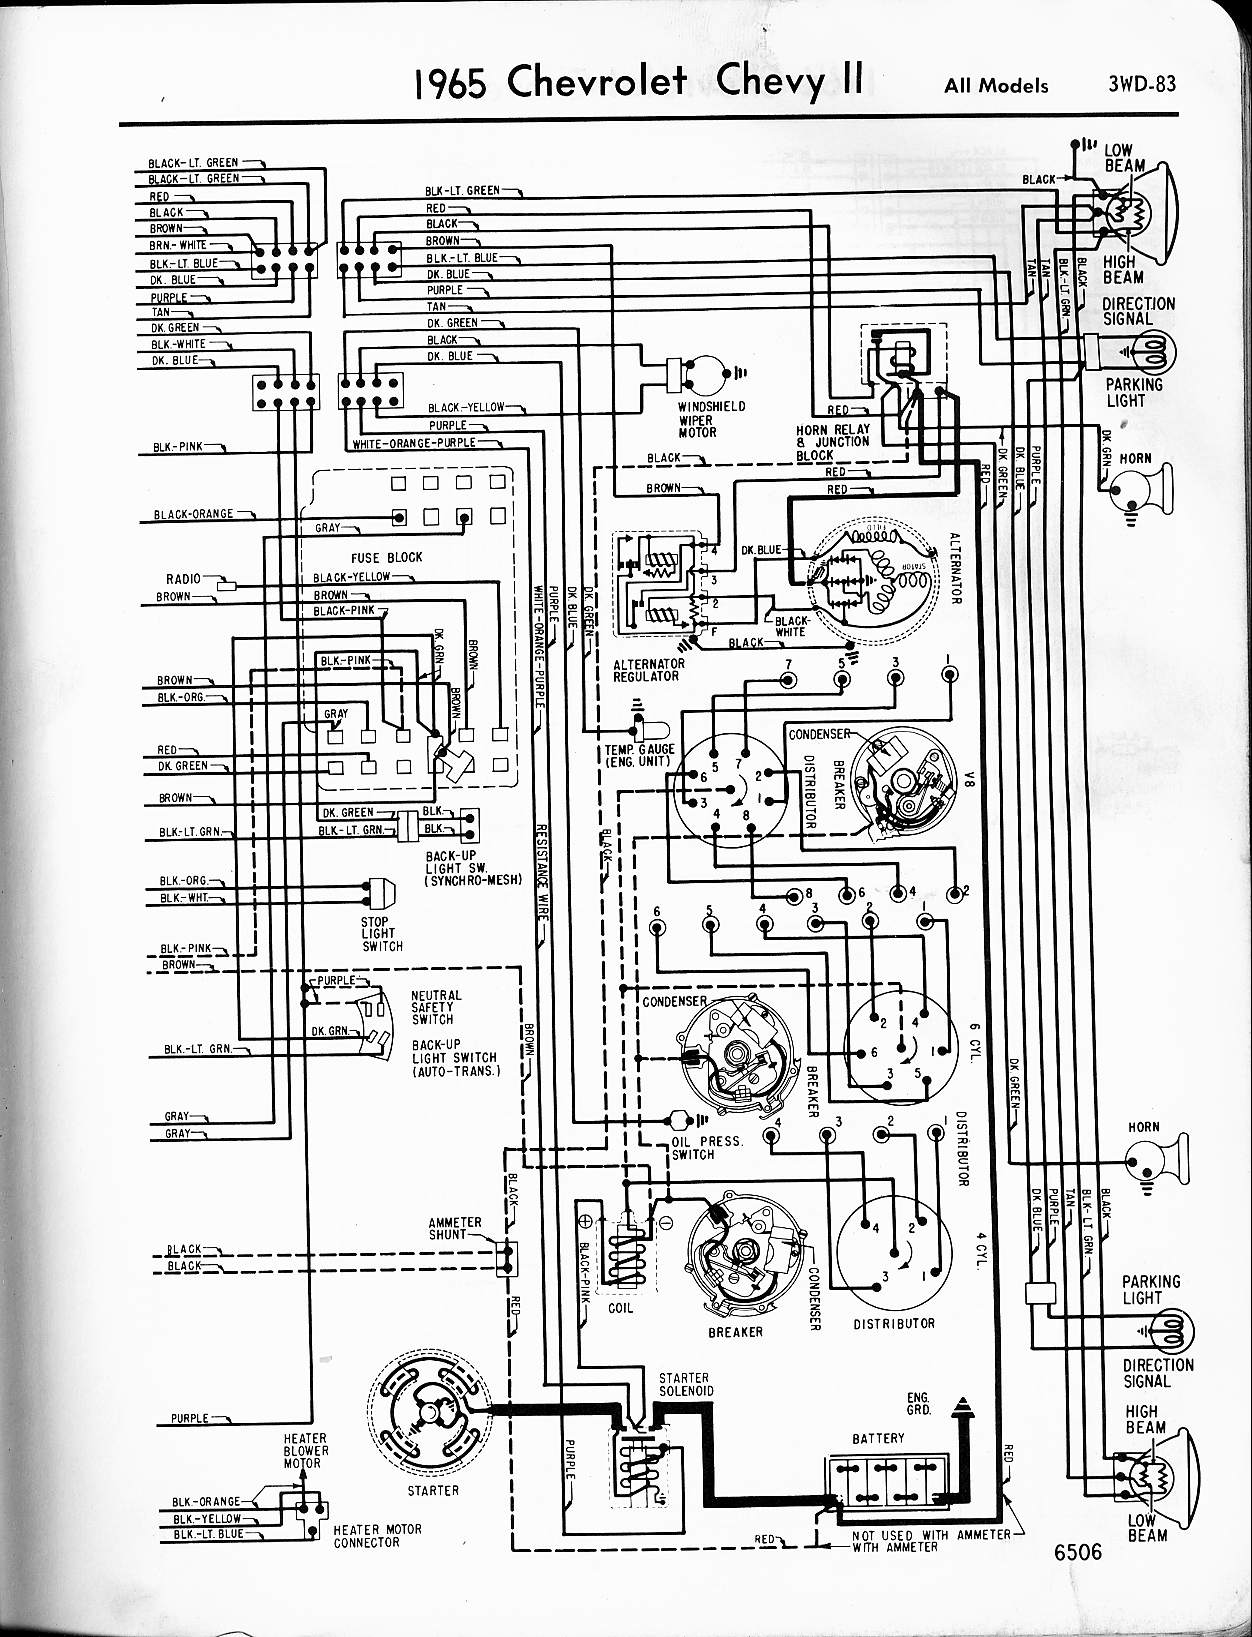 MWireChev65_3WD 083 chevy diagrams 1965 chevy truck wiring harness at n-0.co